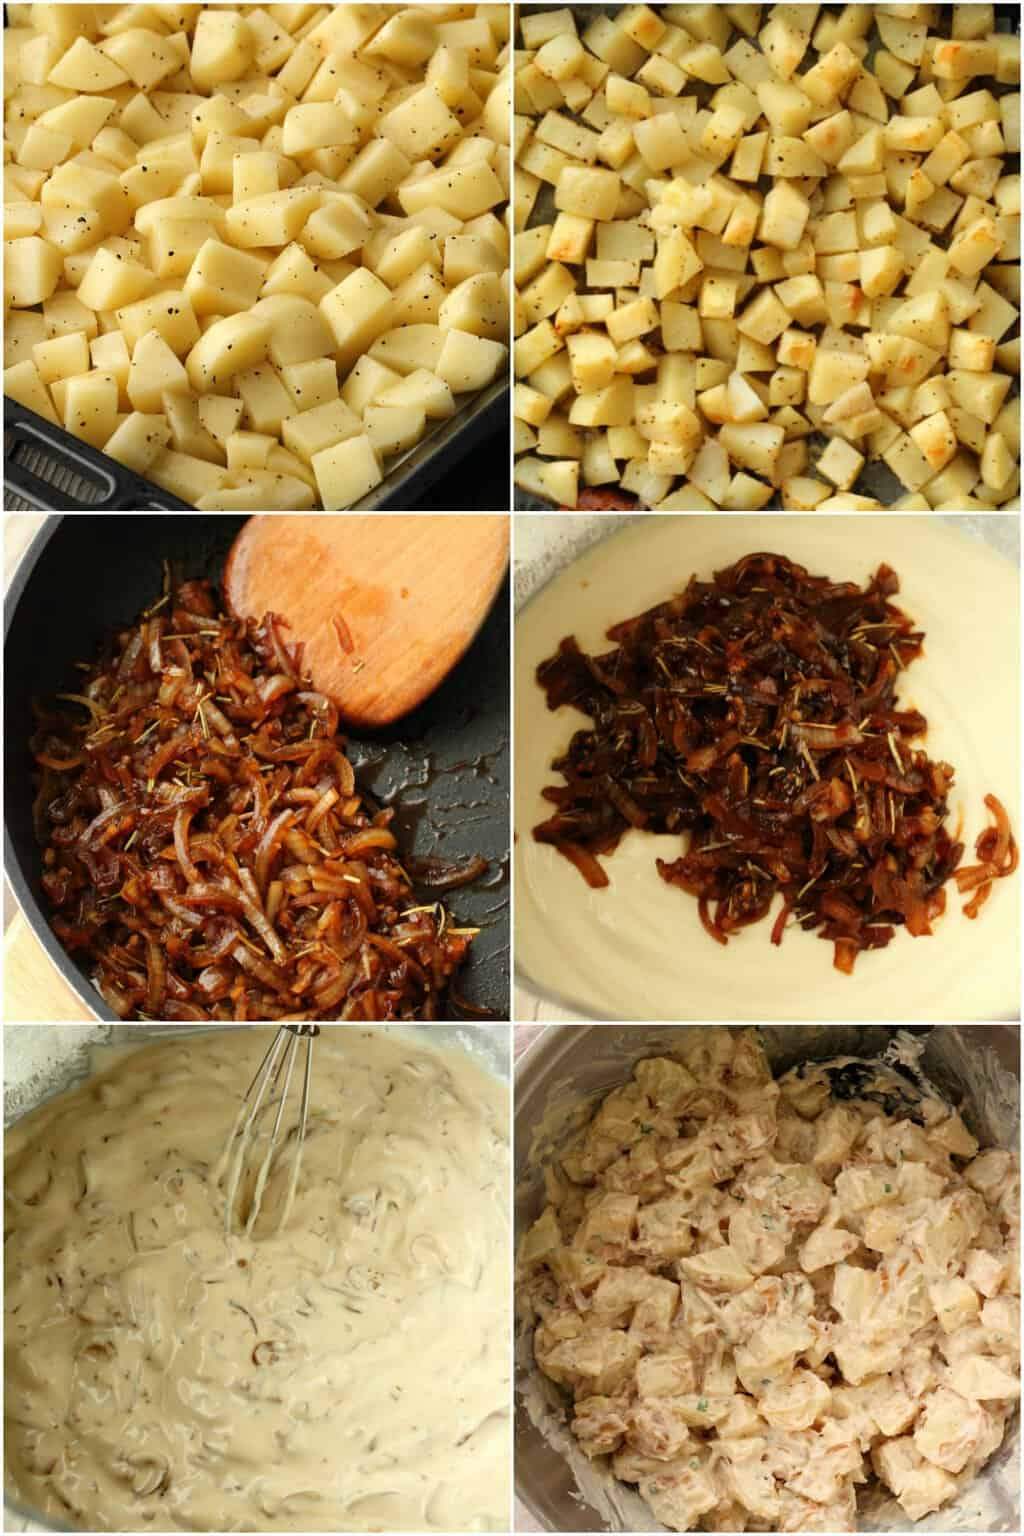 Step by step process photo collage of making vegan potato salad